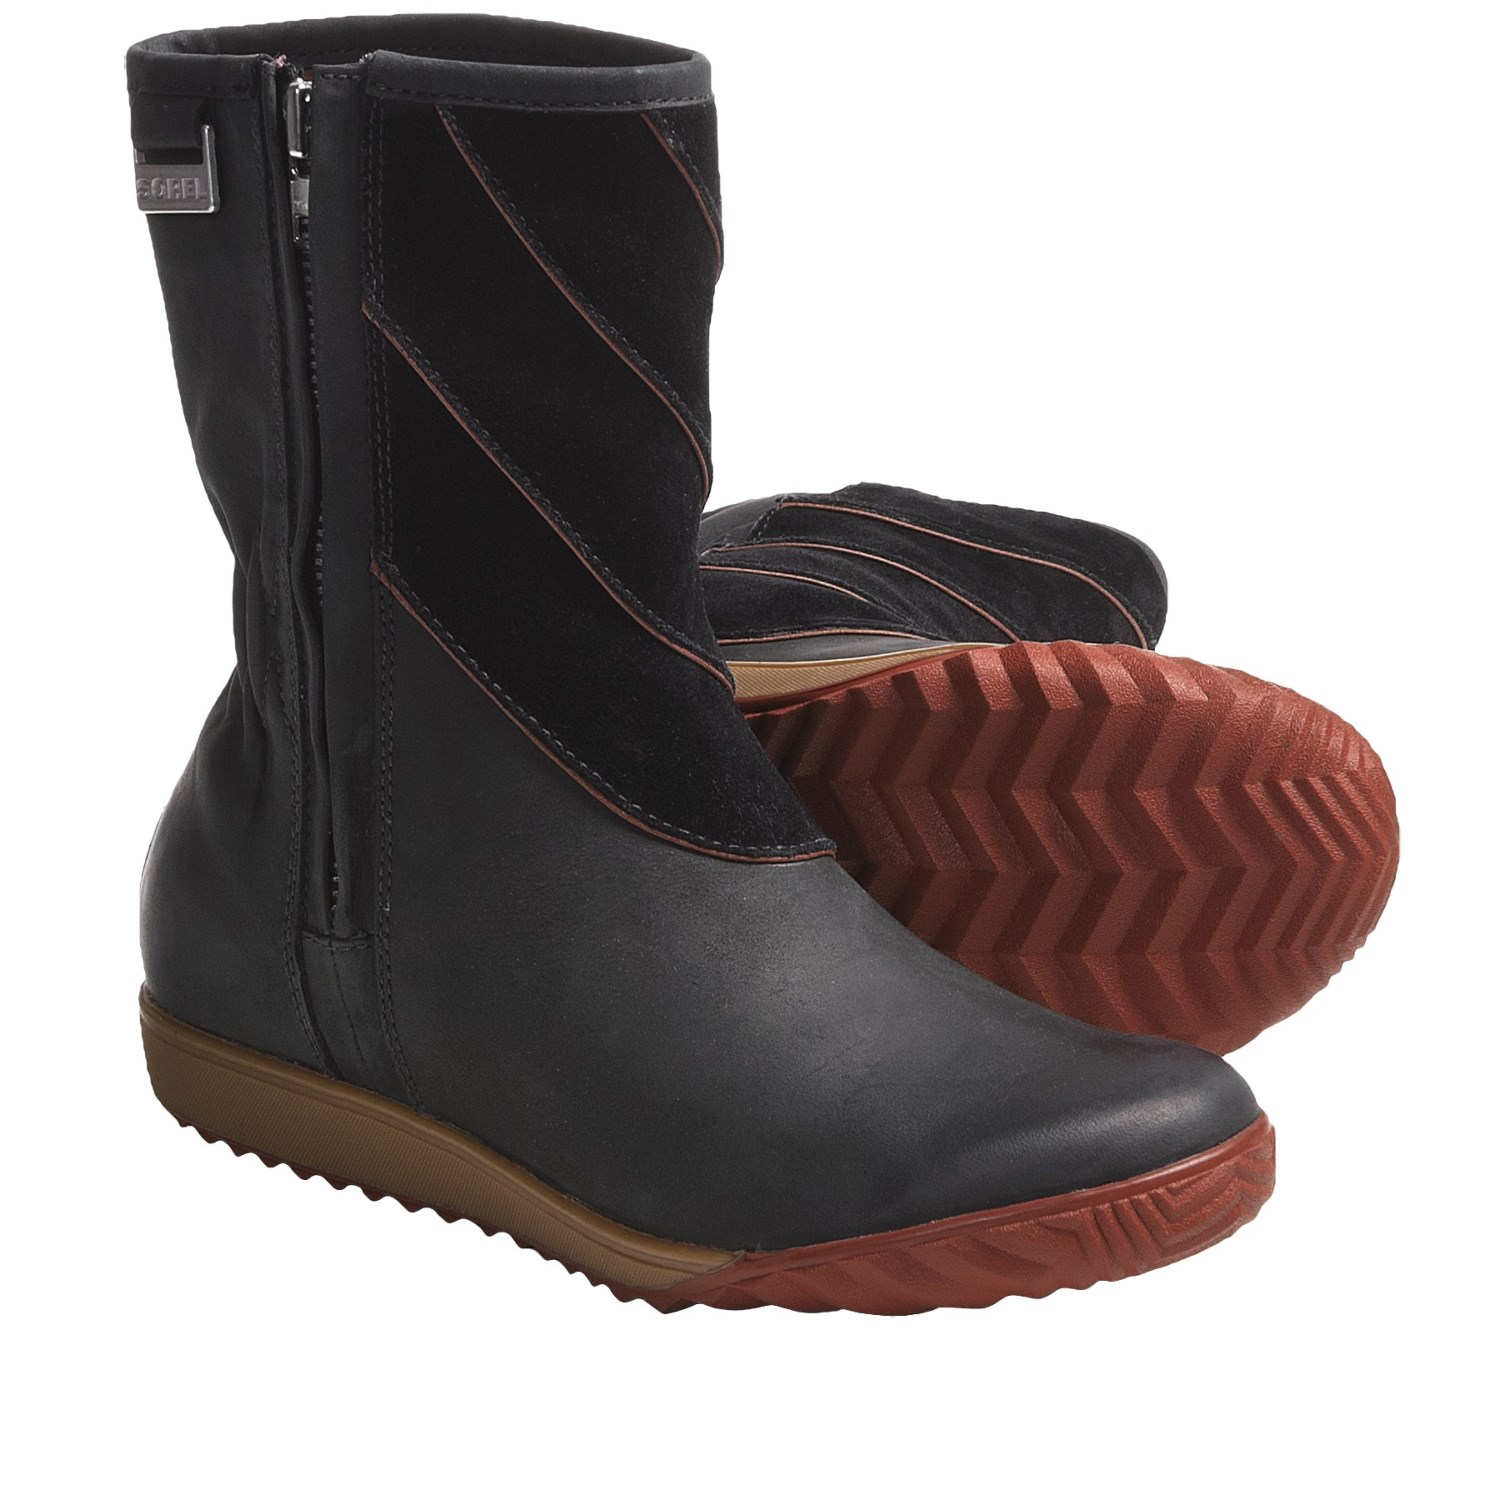 Unique 10 Perfect Winter Boots For Women 2015